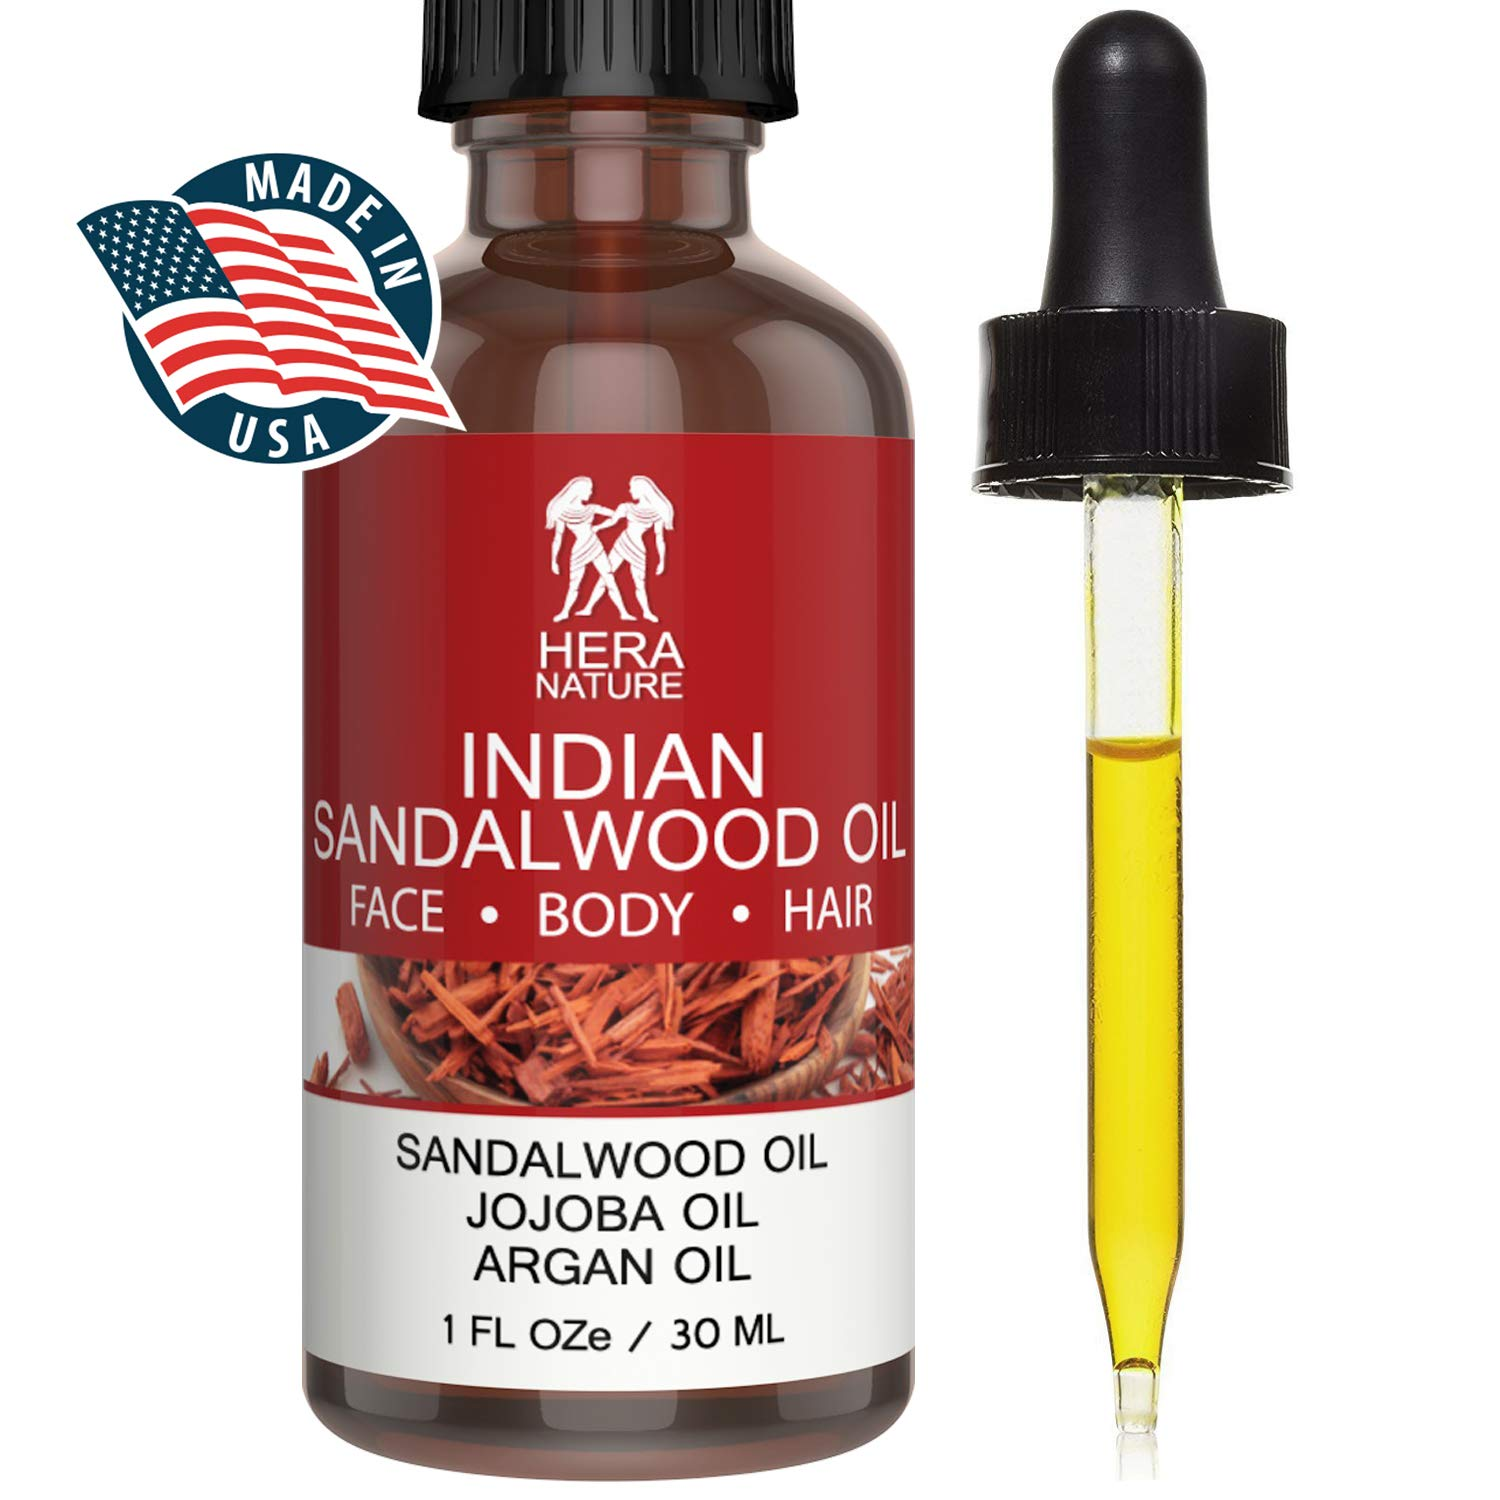 Indian Sandalwood Essential Oil in Jojoba & Argan Oil, Pure and Natural Ingredients, Powerful Anti-Aging, moisturize and Hydrate Skin,Hair & Beard. (USA) Therapeutic Grade, 30ml (1oz)